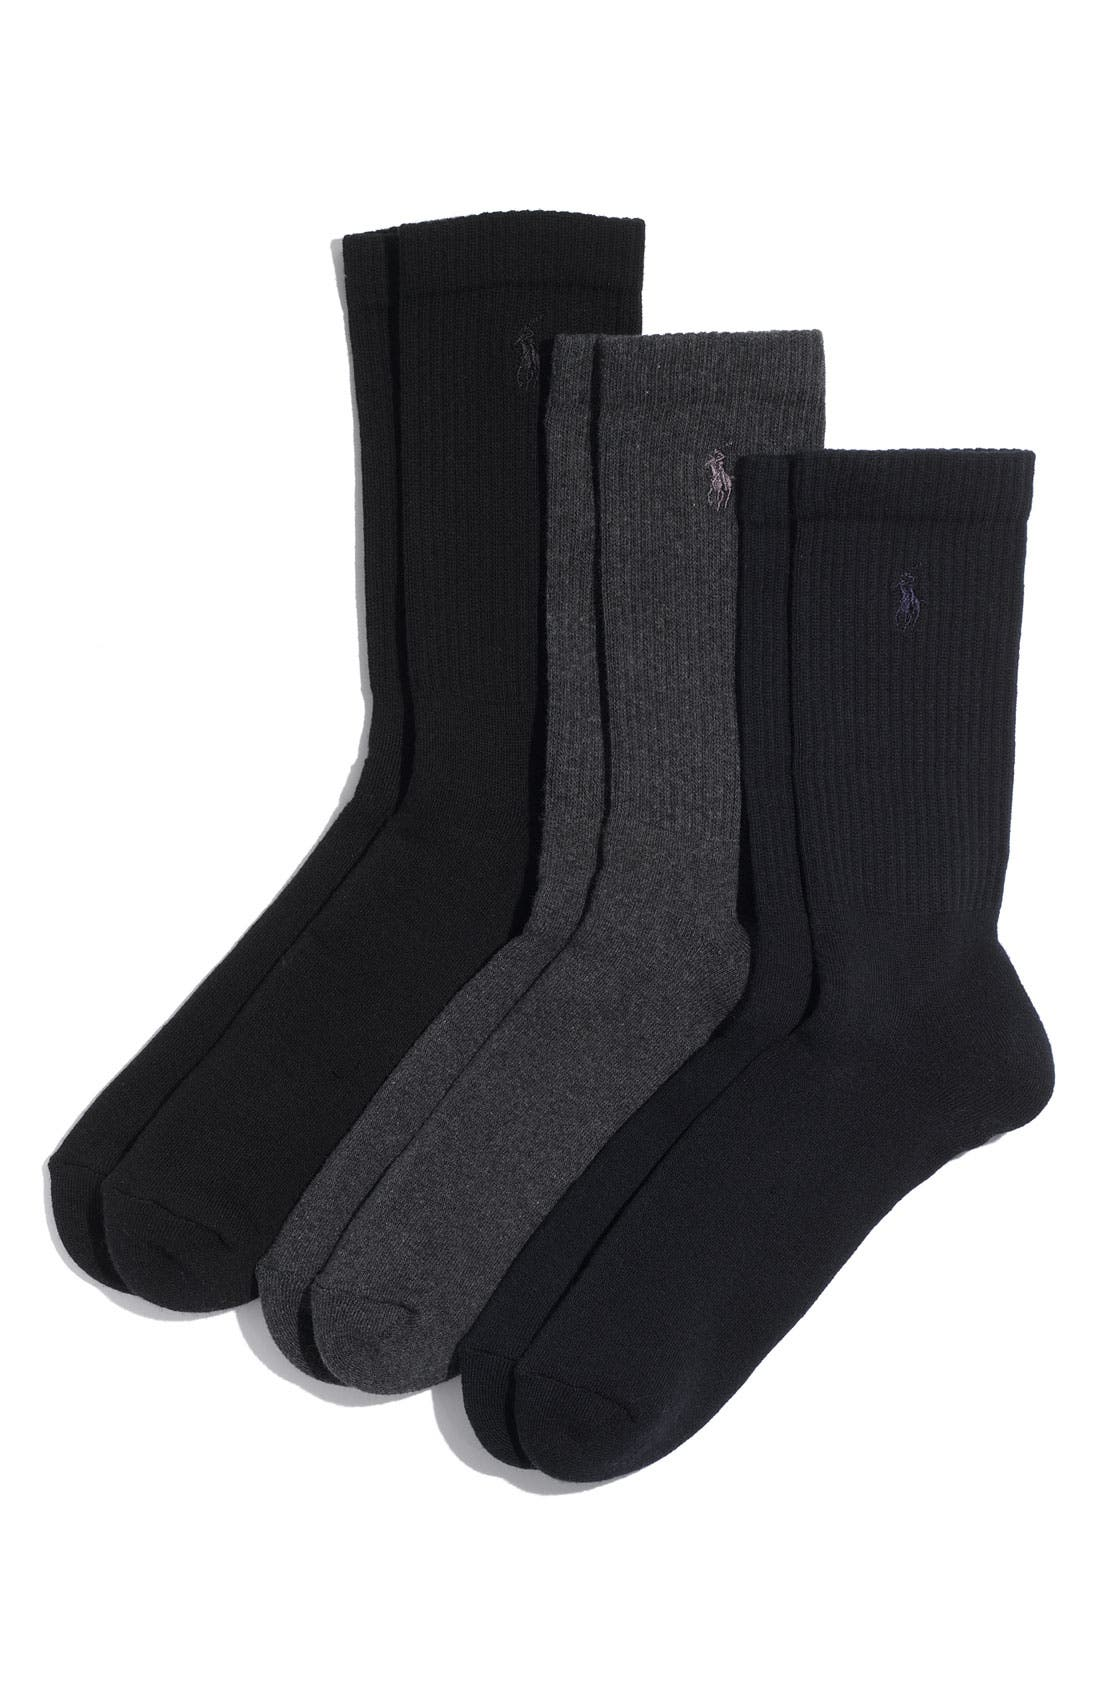 3-Pack Crew Socks,                             Main thumbnail 1, color,                             ASSORTED